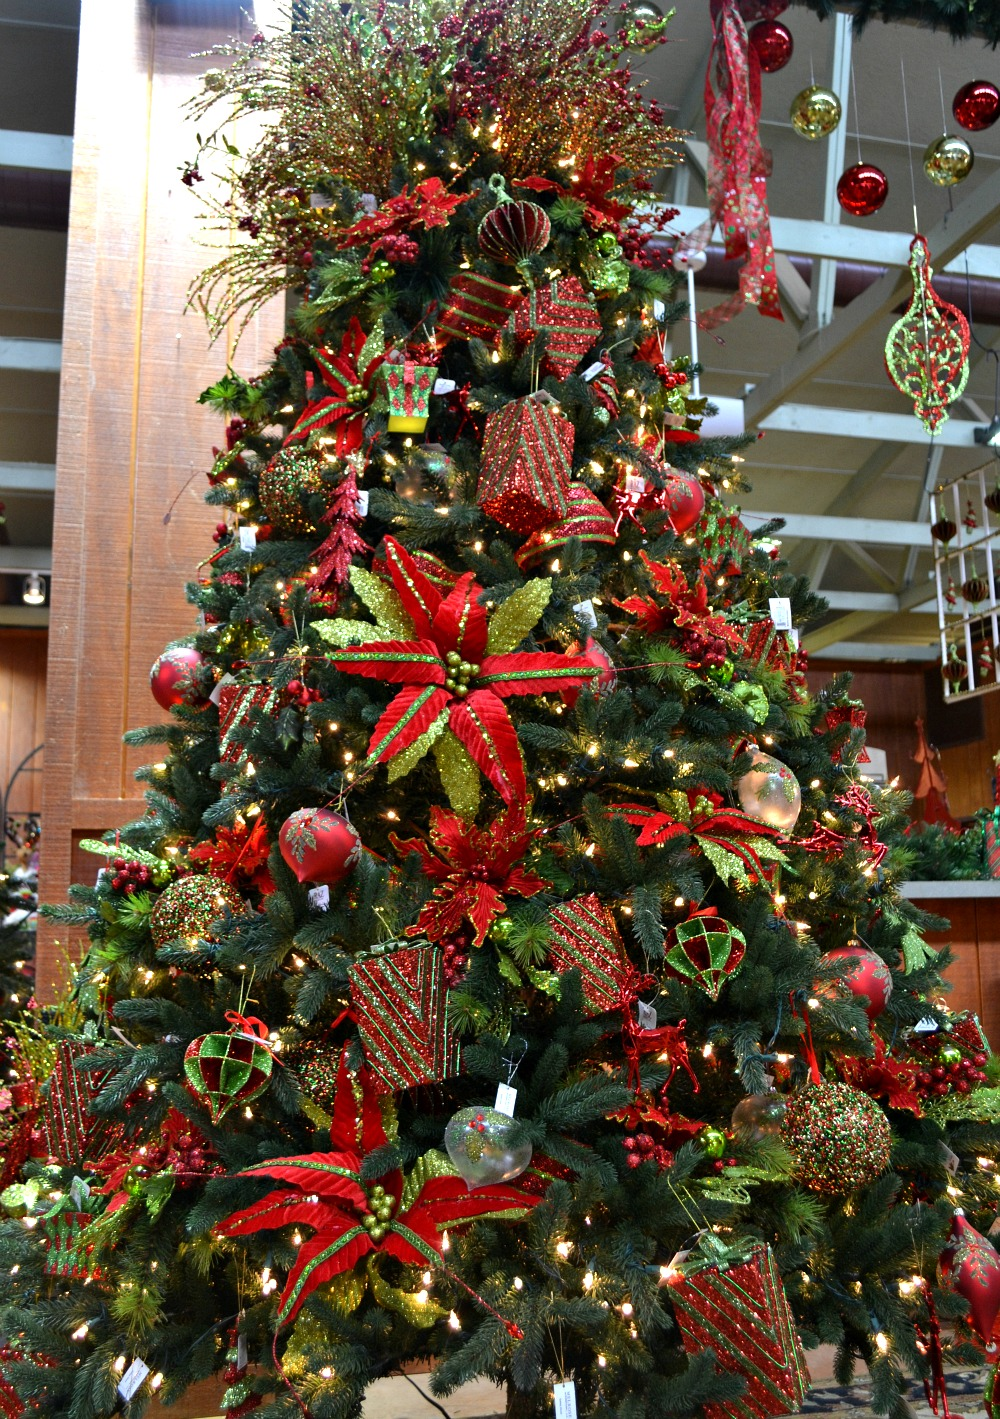 christmas tree decorations red and green photo2 - Red And Green Christmas Tree Decorations